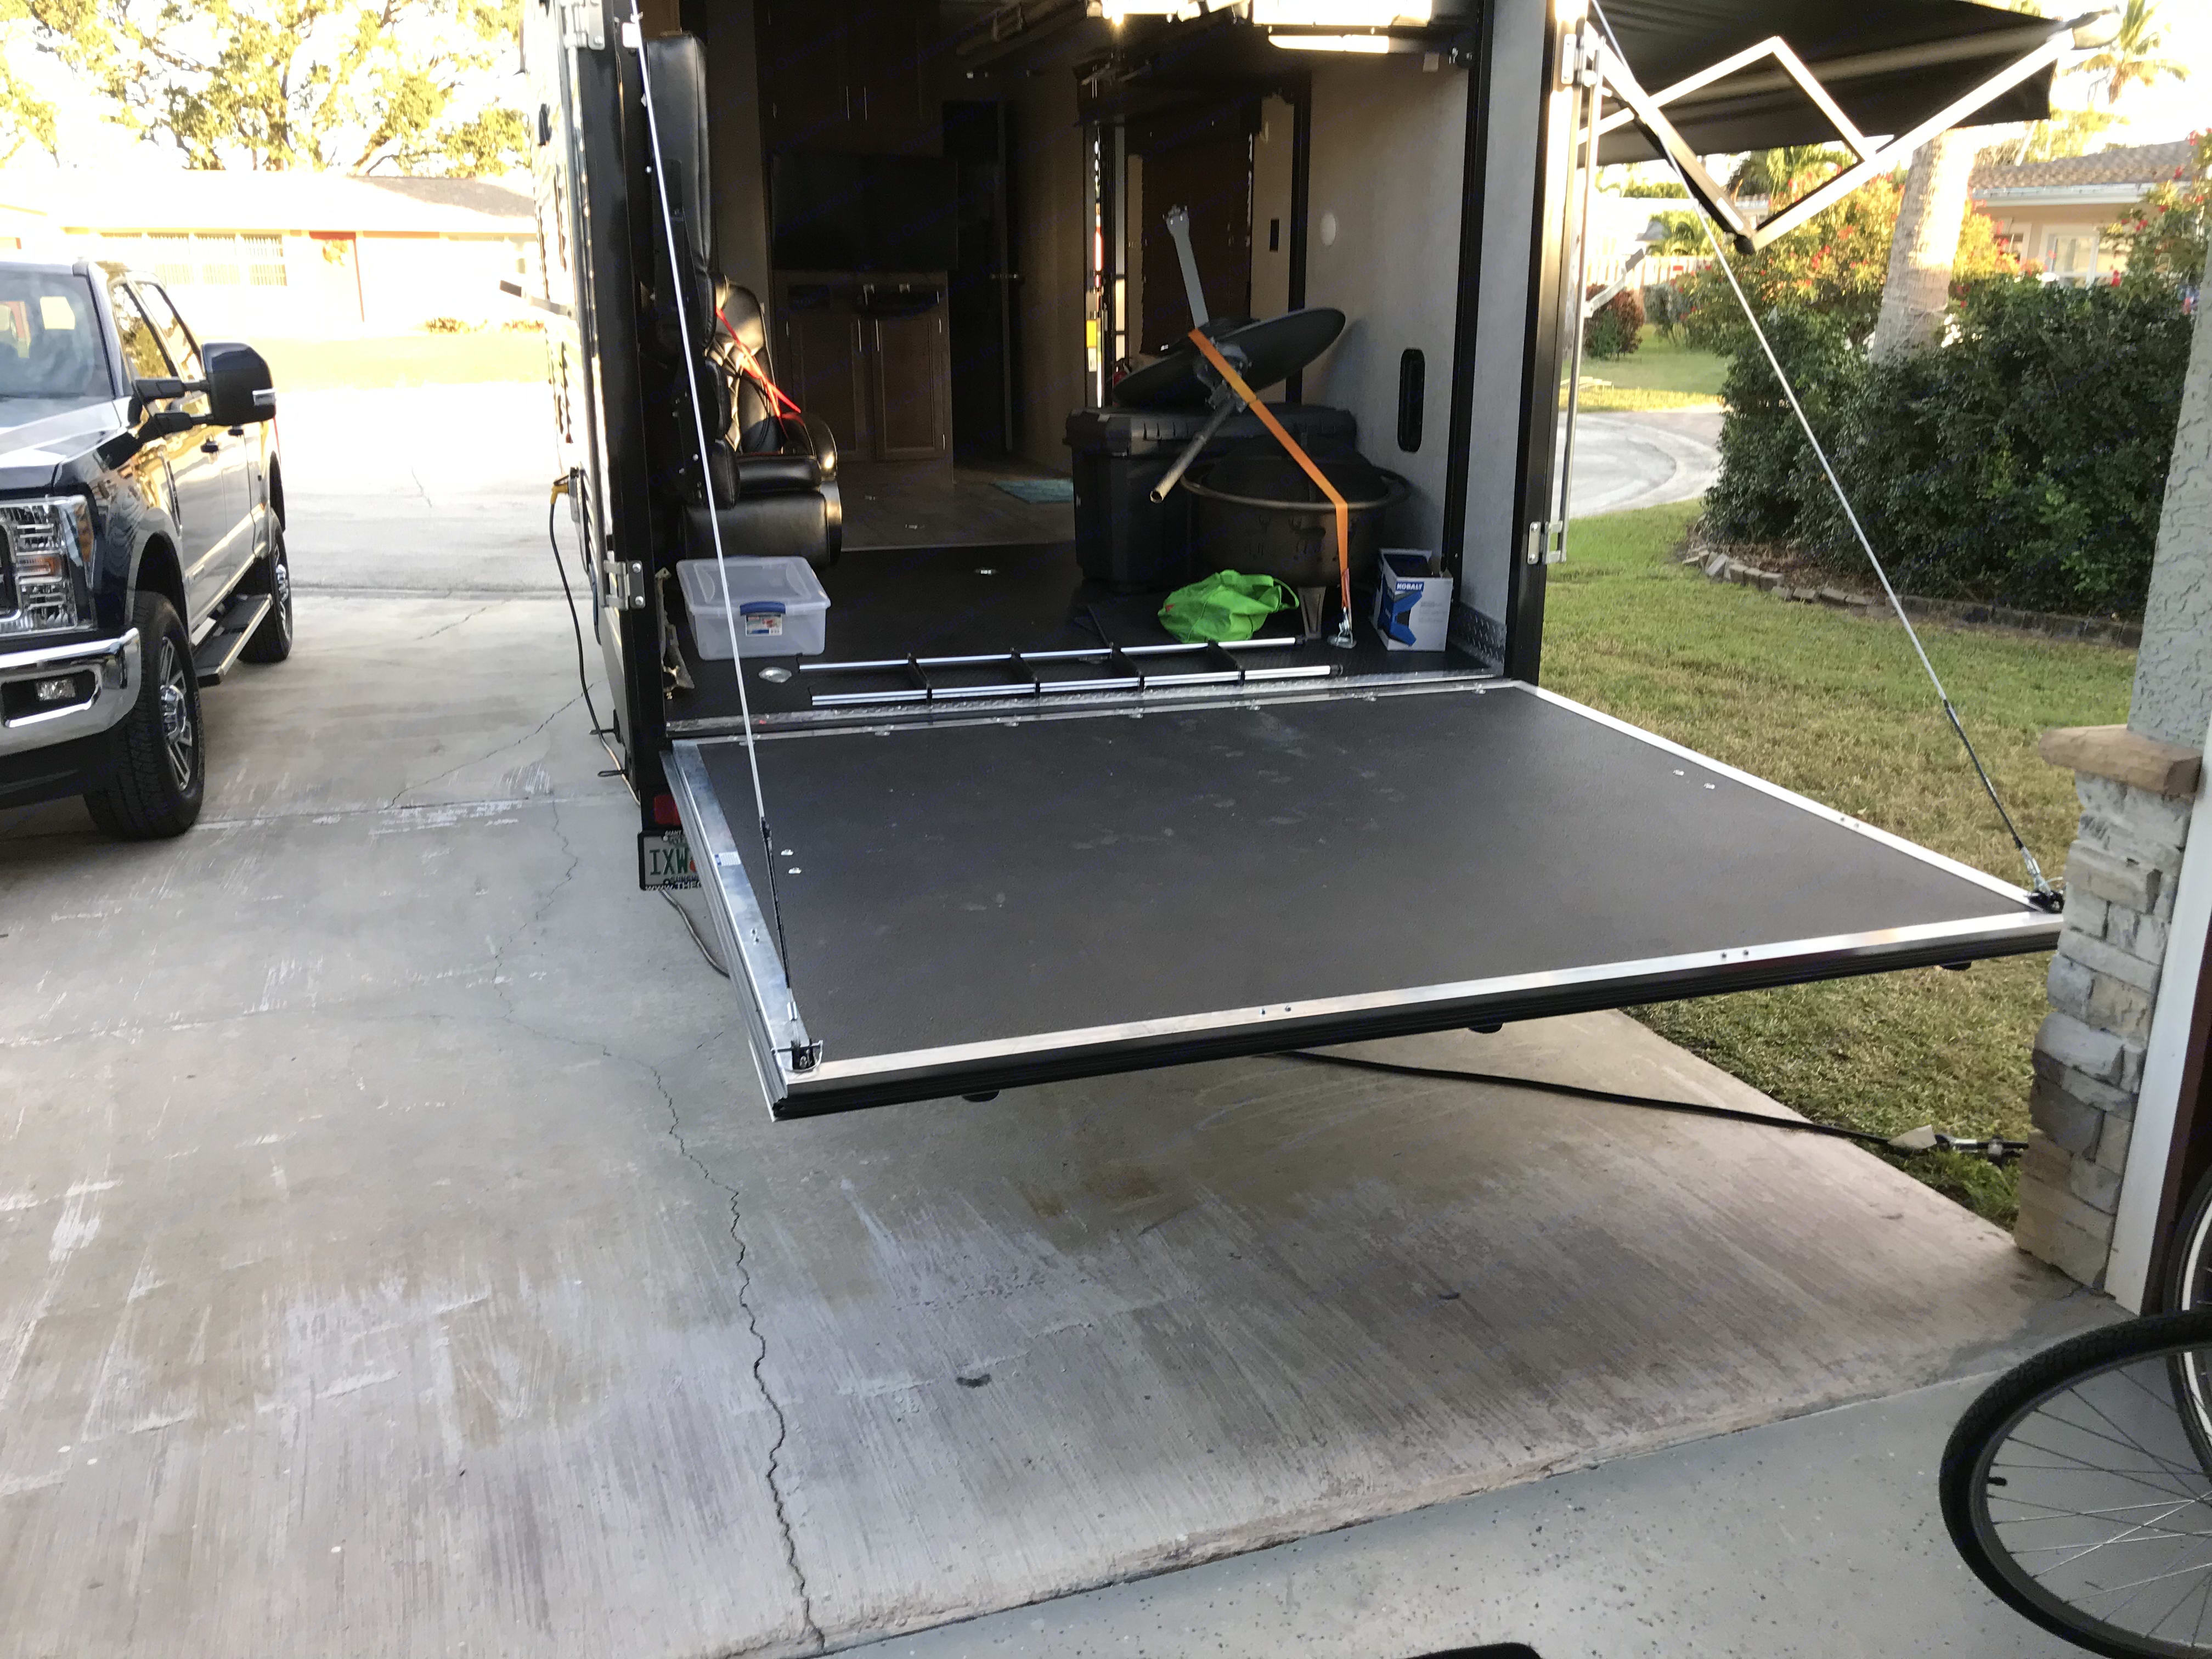 Able to keep ramp door leveled to make into a patio deck. Forest River xlr boost 2018